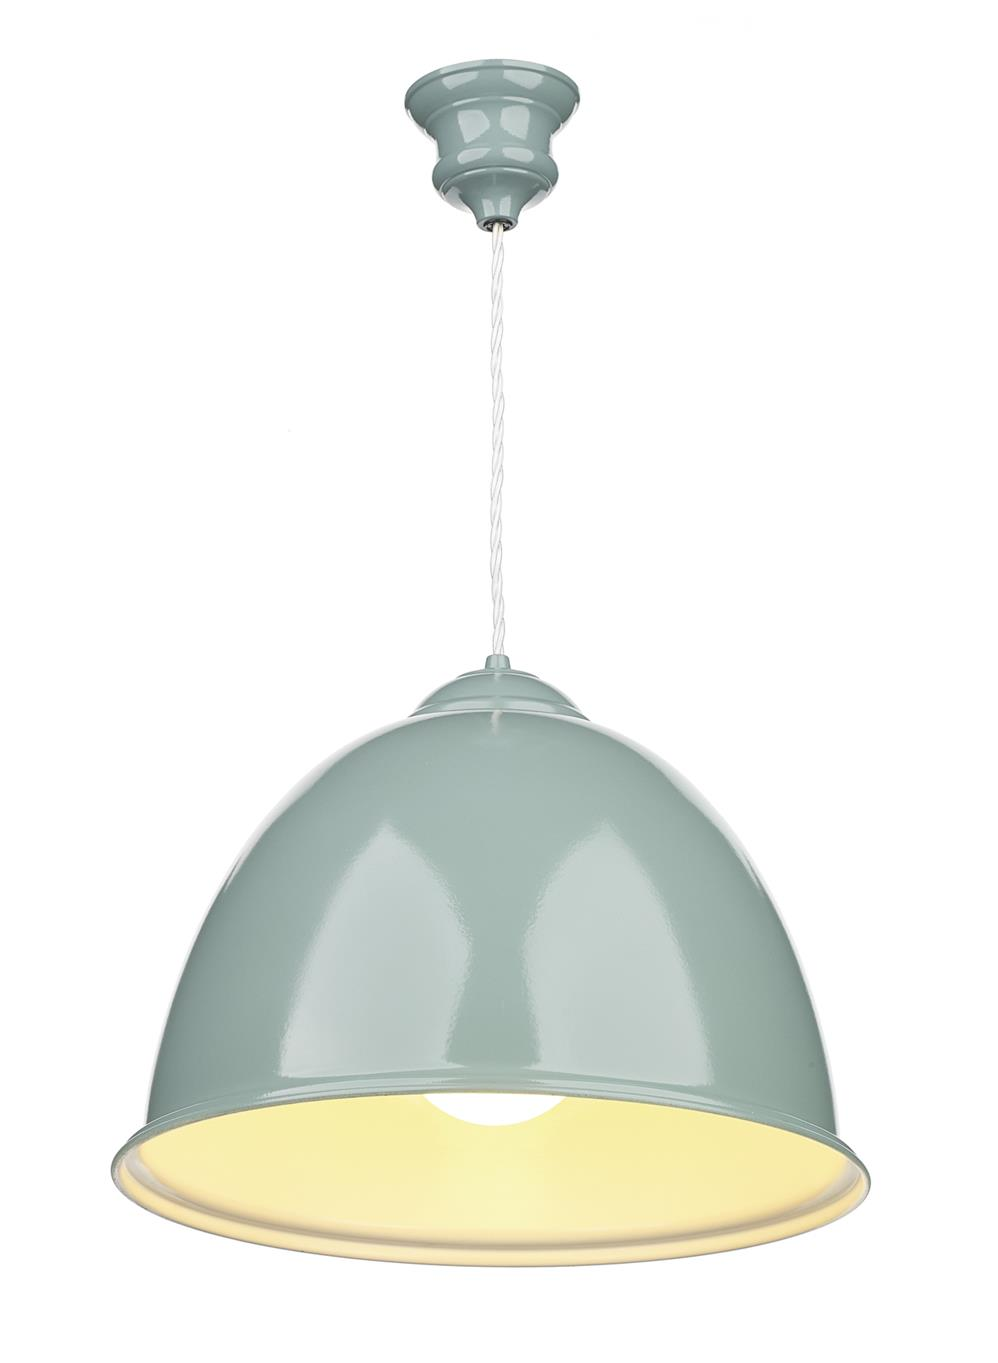 David Hunt Lighting EUS0173 Euston 1 Light Pendant in Blue Verditer Semi Gloss with White Inner